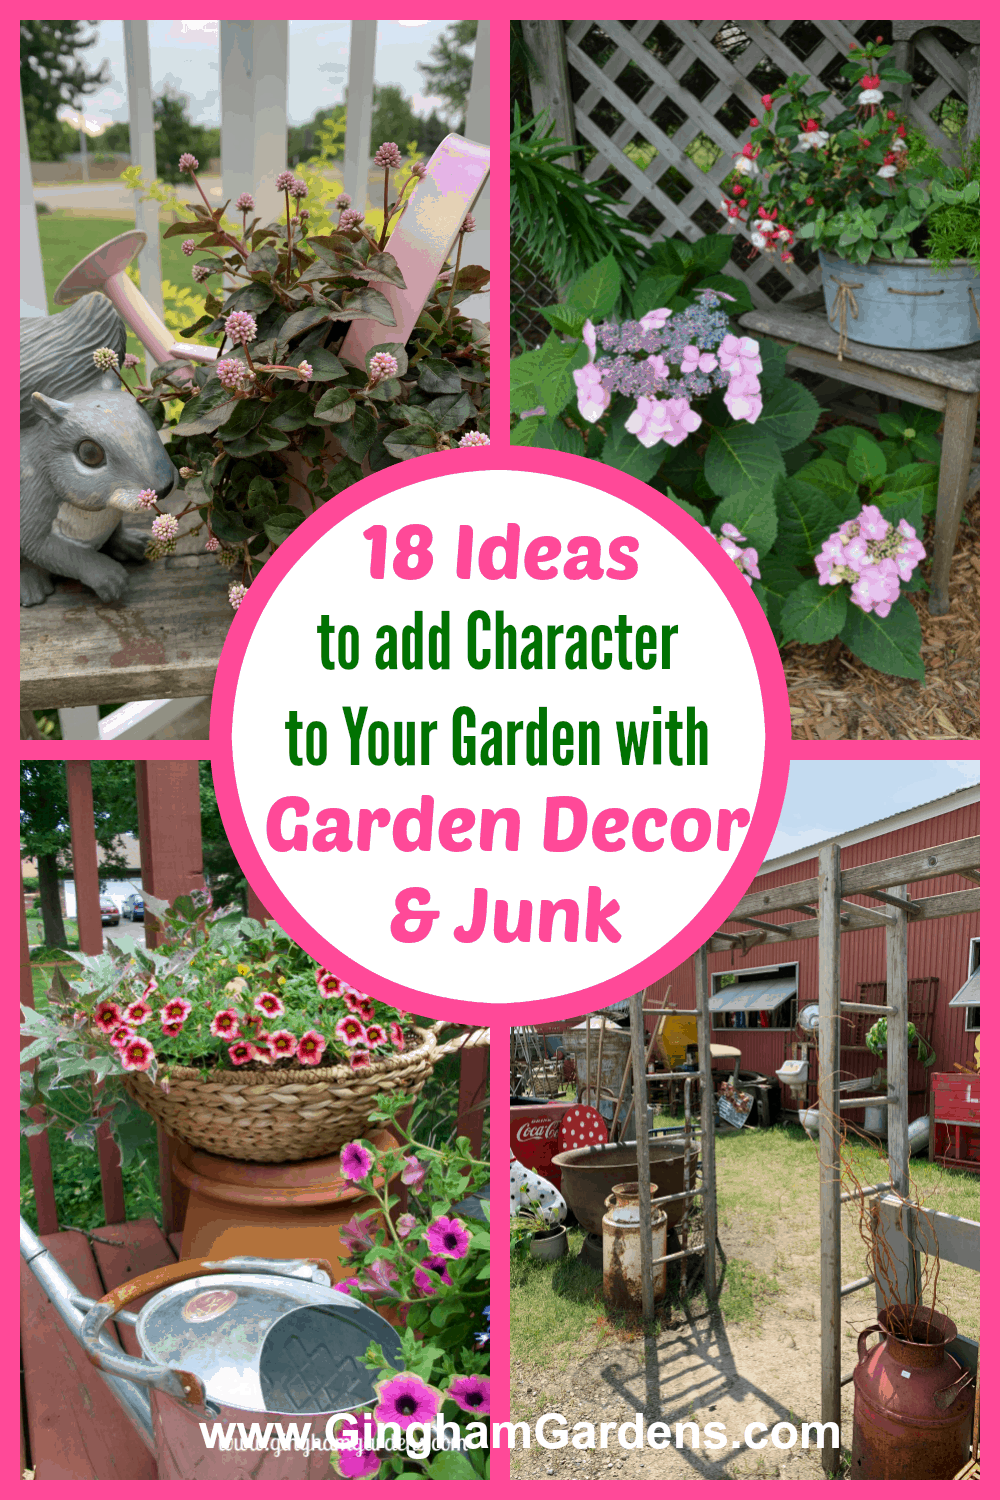 Images of Garden Decor with Text Overlay - 18 Ideas for Adding Character to Your Gardens